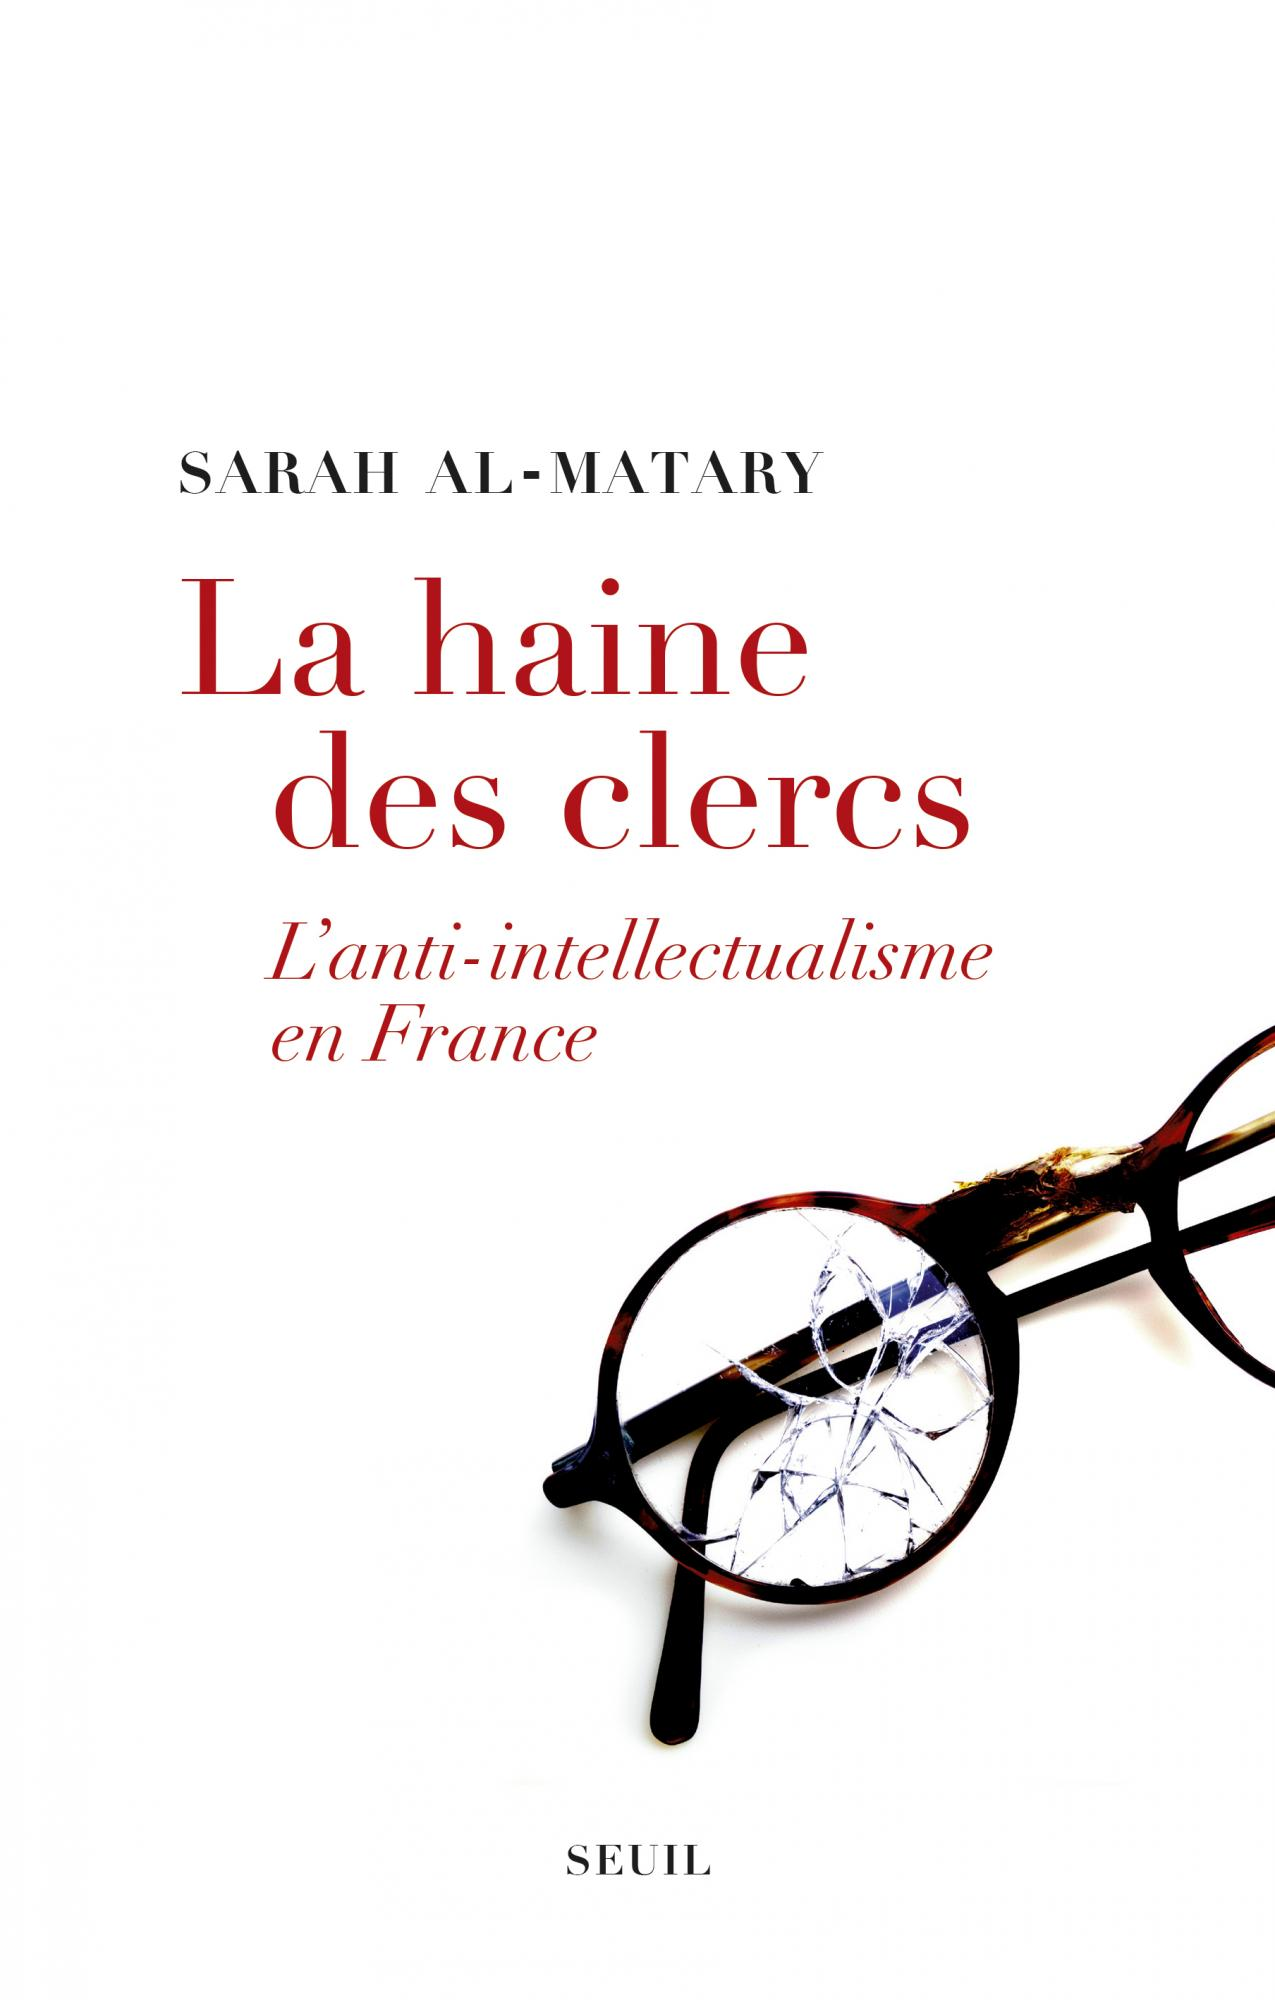 S. Al-Matary, La Haine des clercs. L'anti-intellectualisme en France